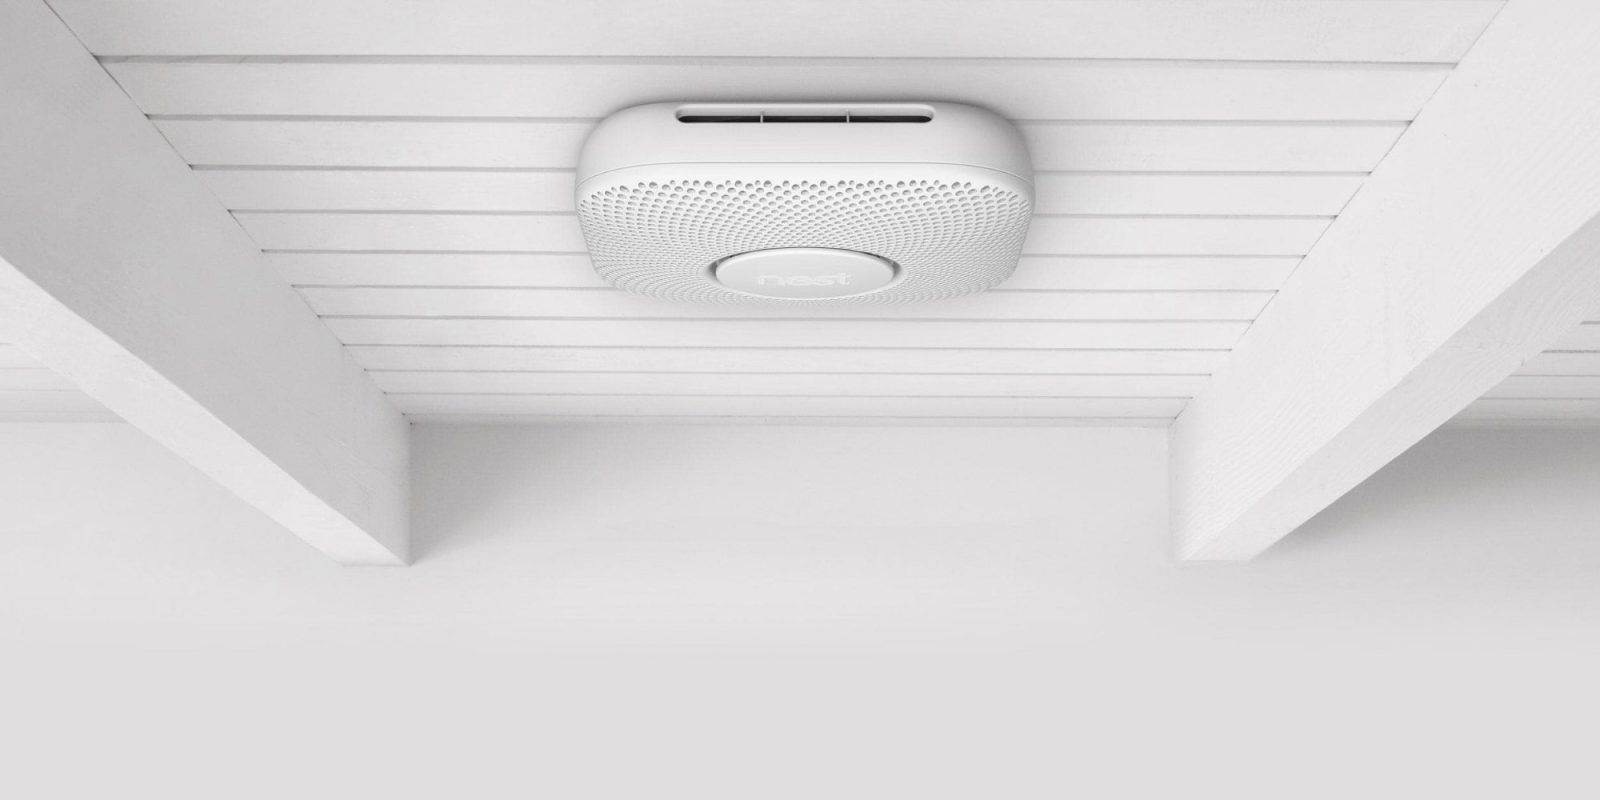 Google Nest Protect will smarten up smoke and CO detection at $90 (Reg. $119)